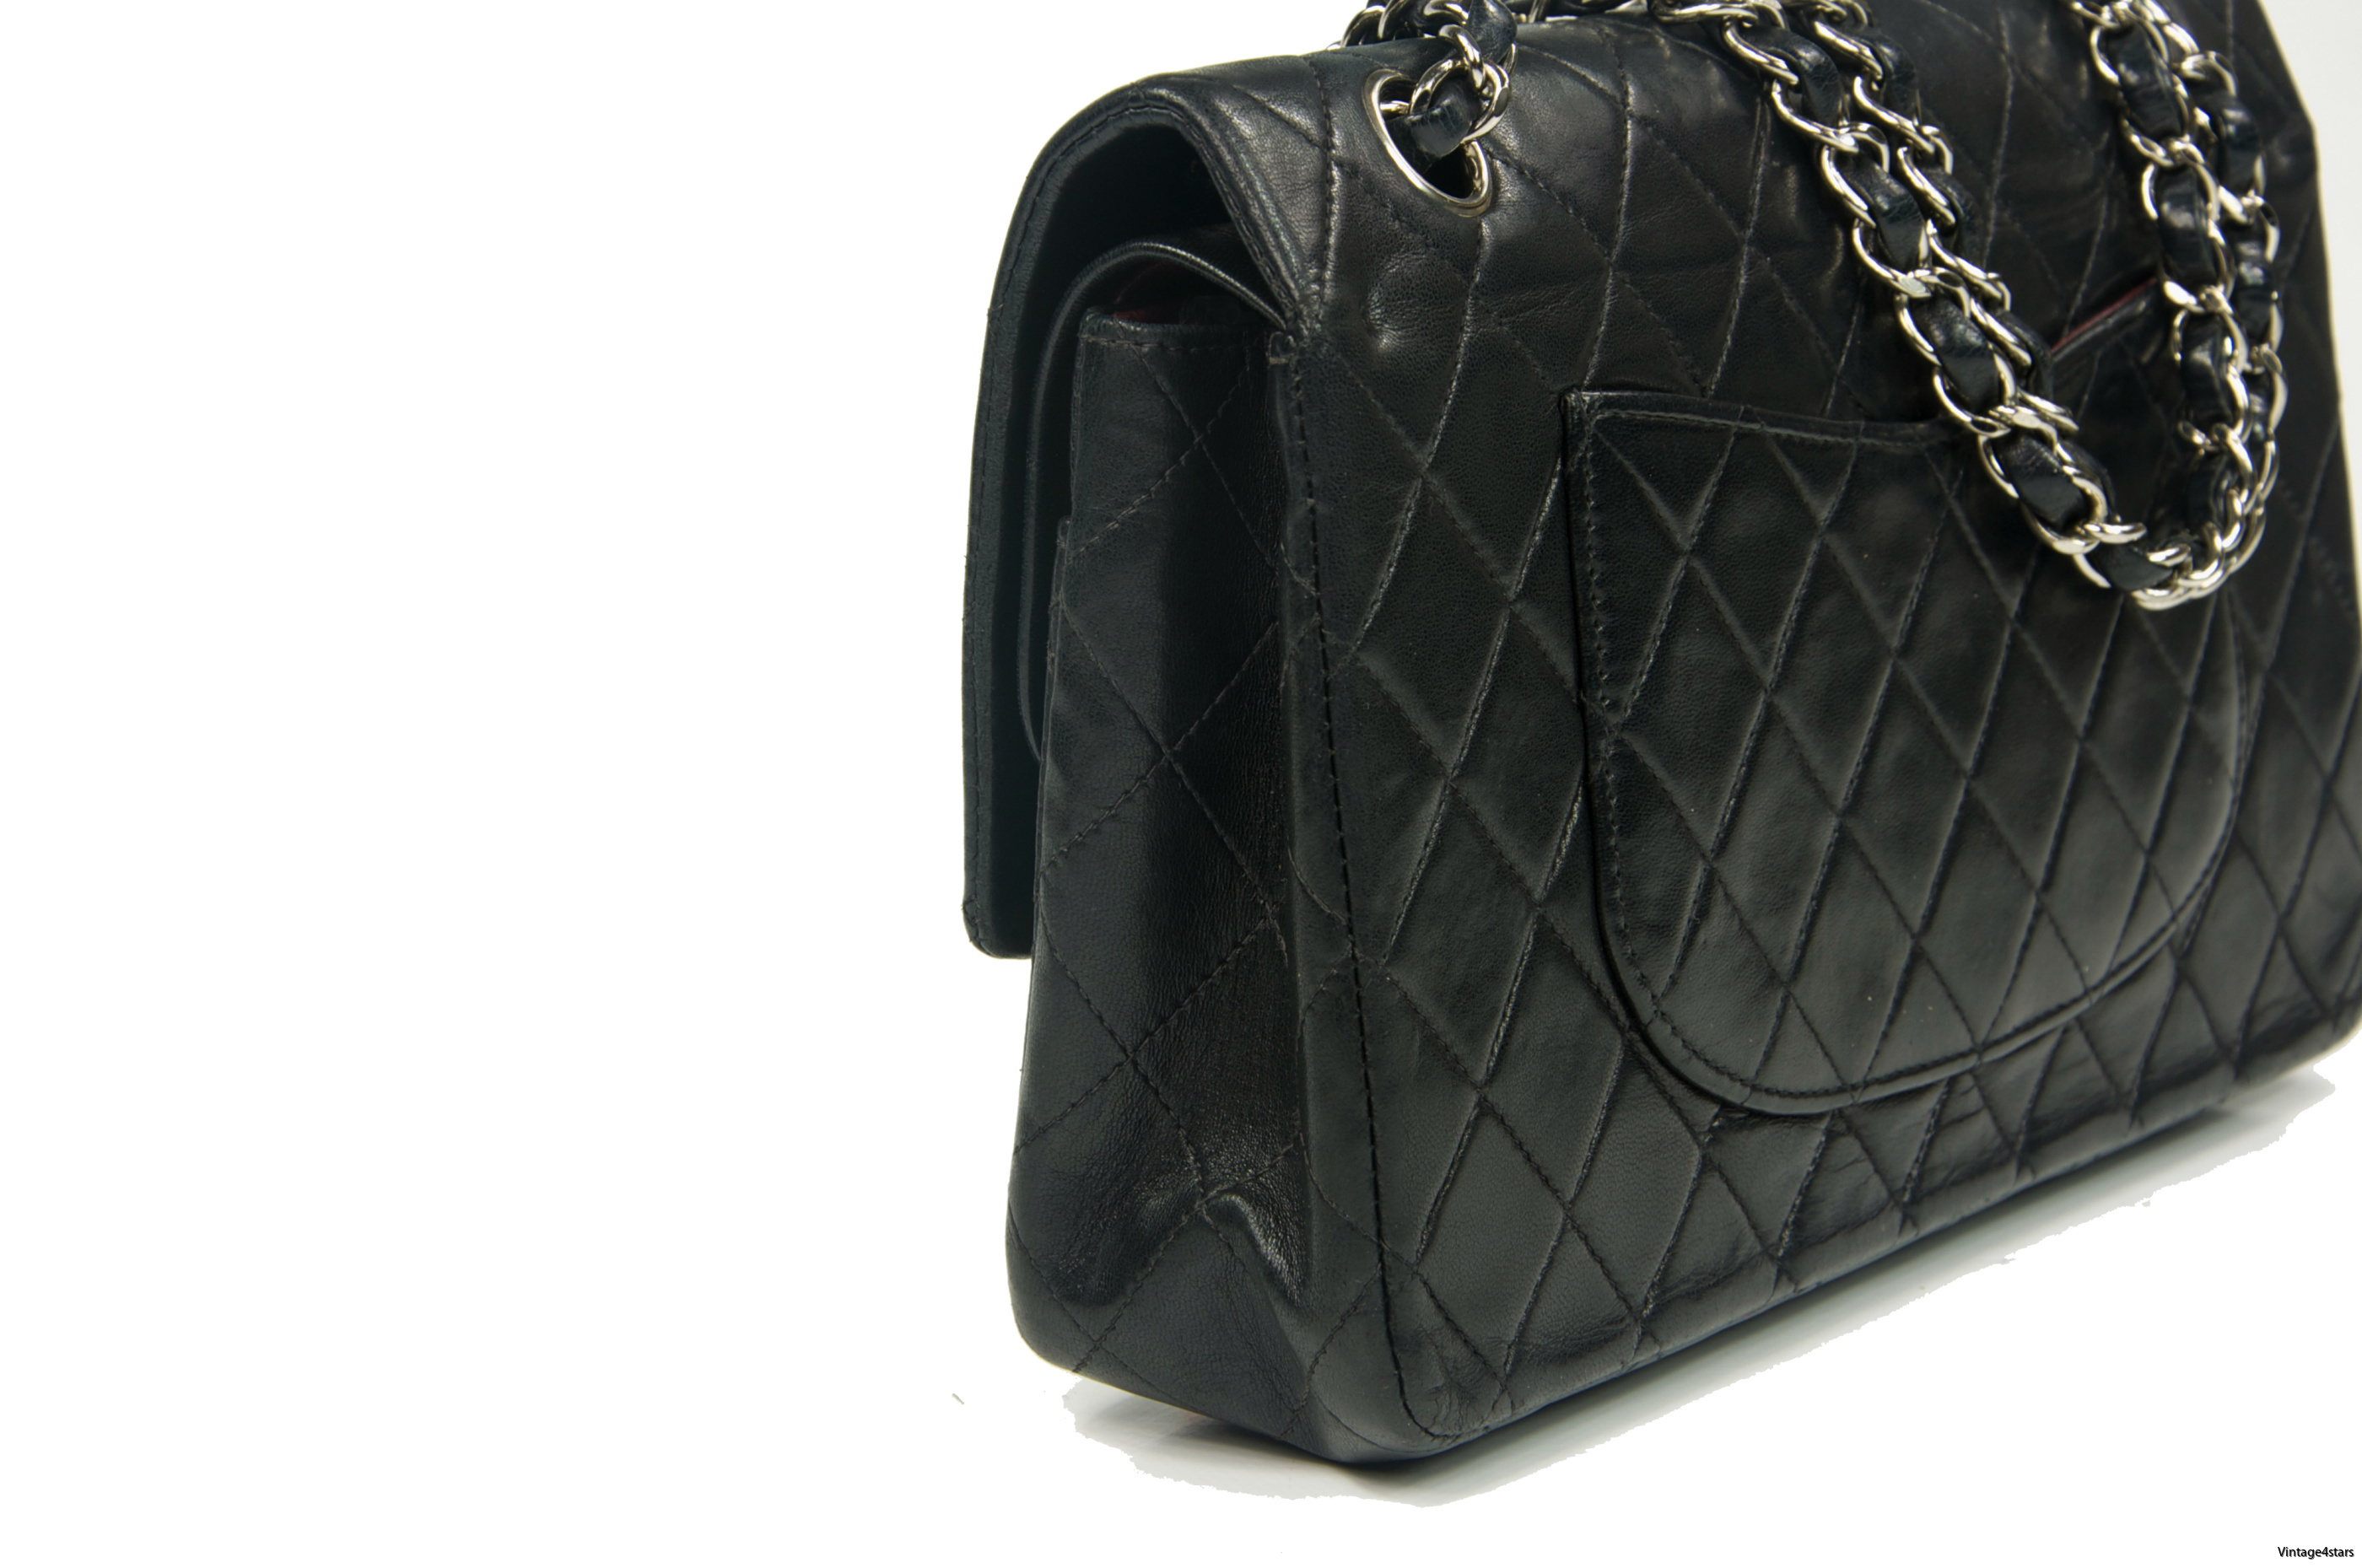 CHANEL Double Flap SHW 006